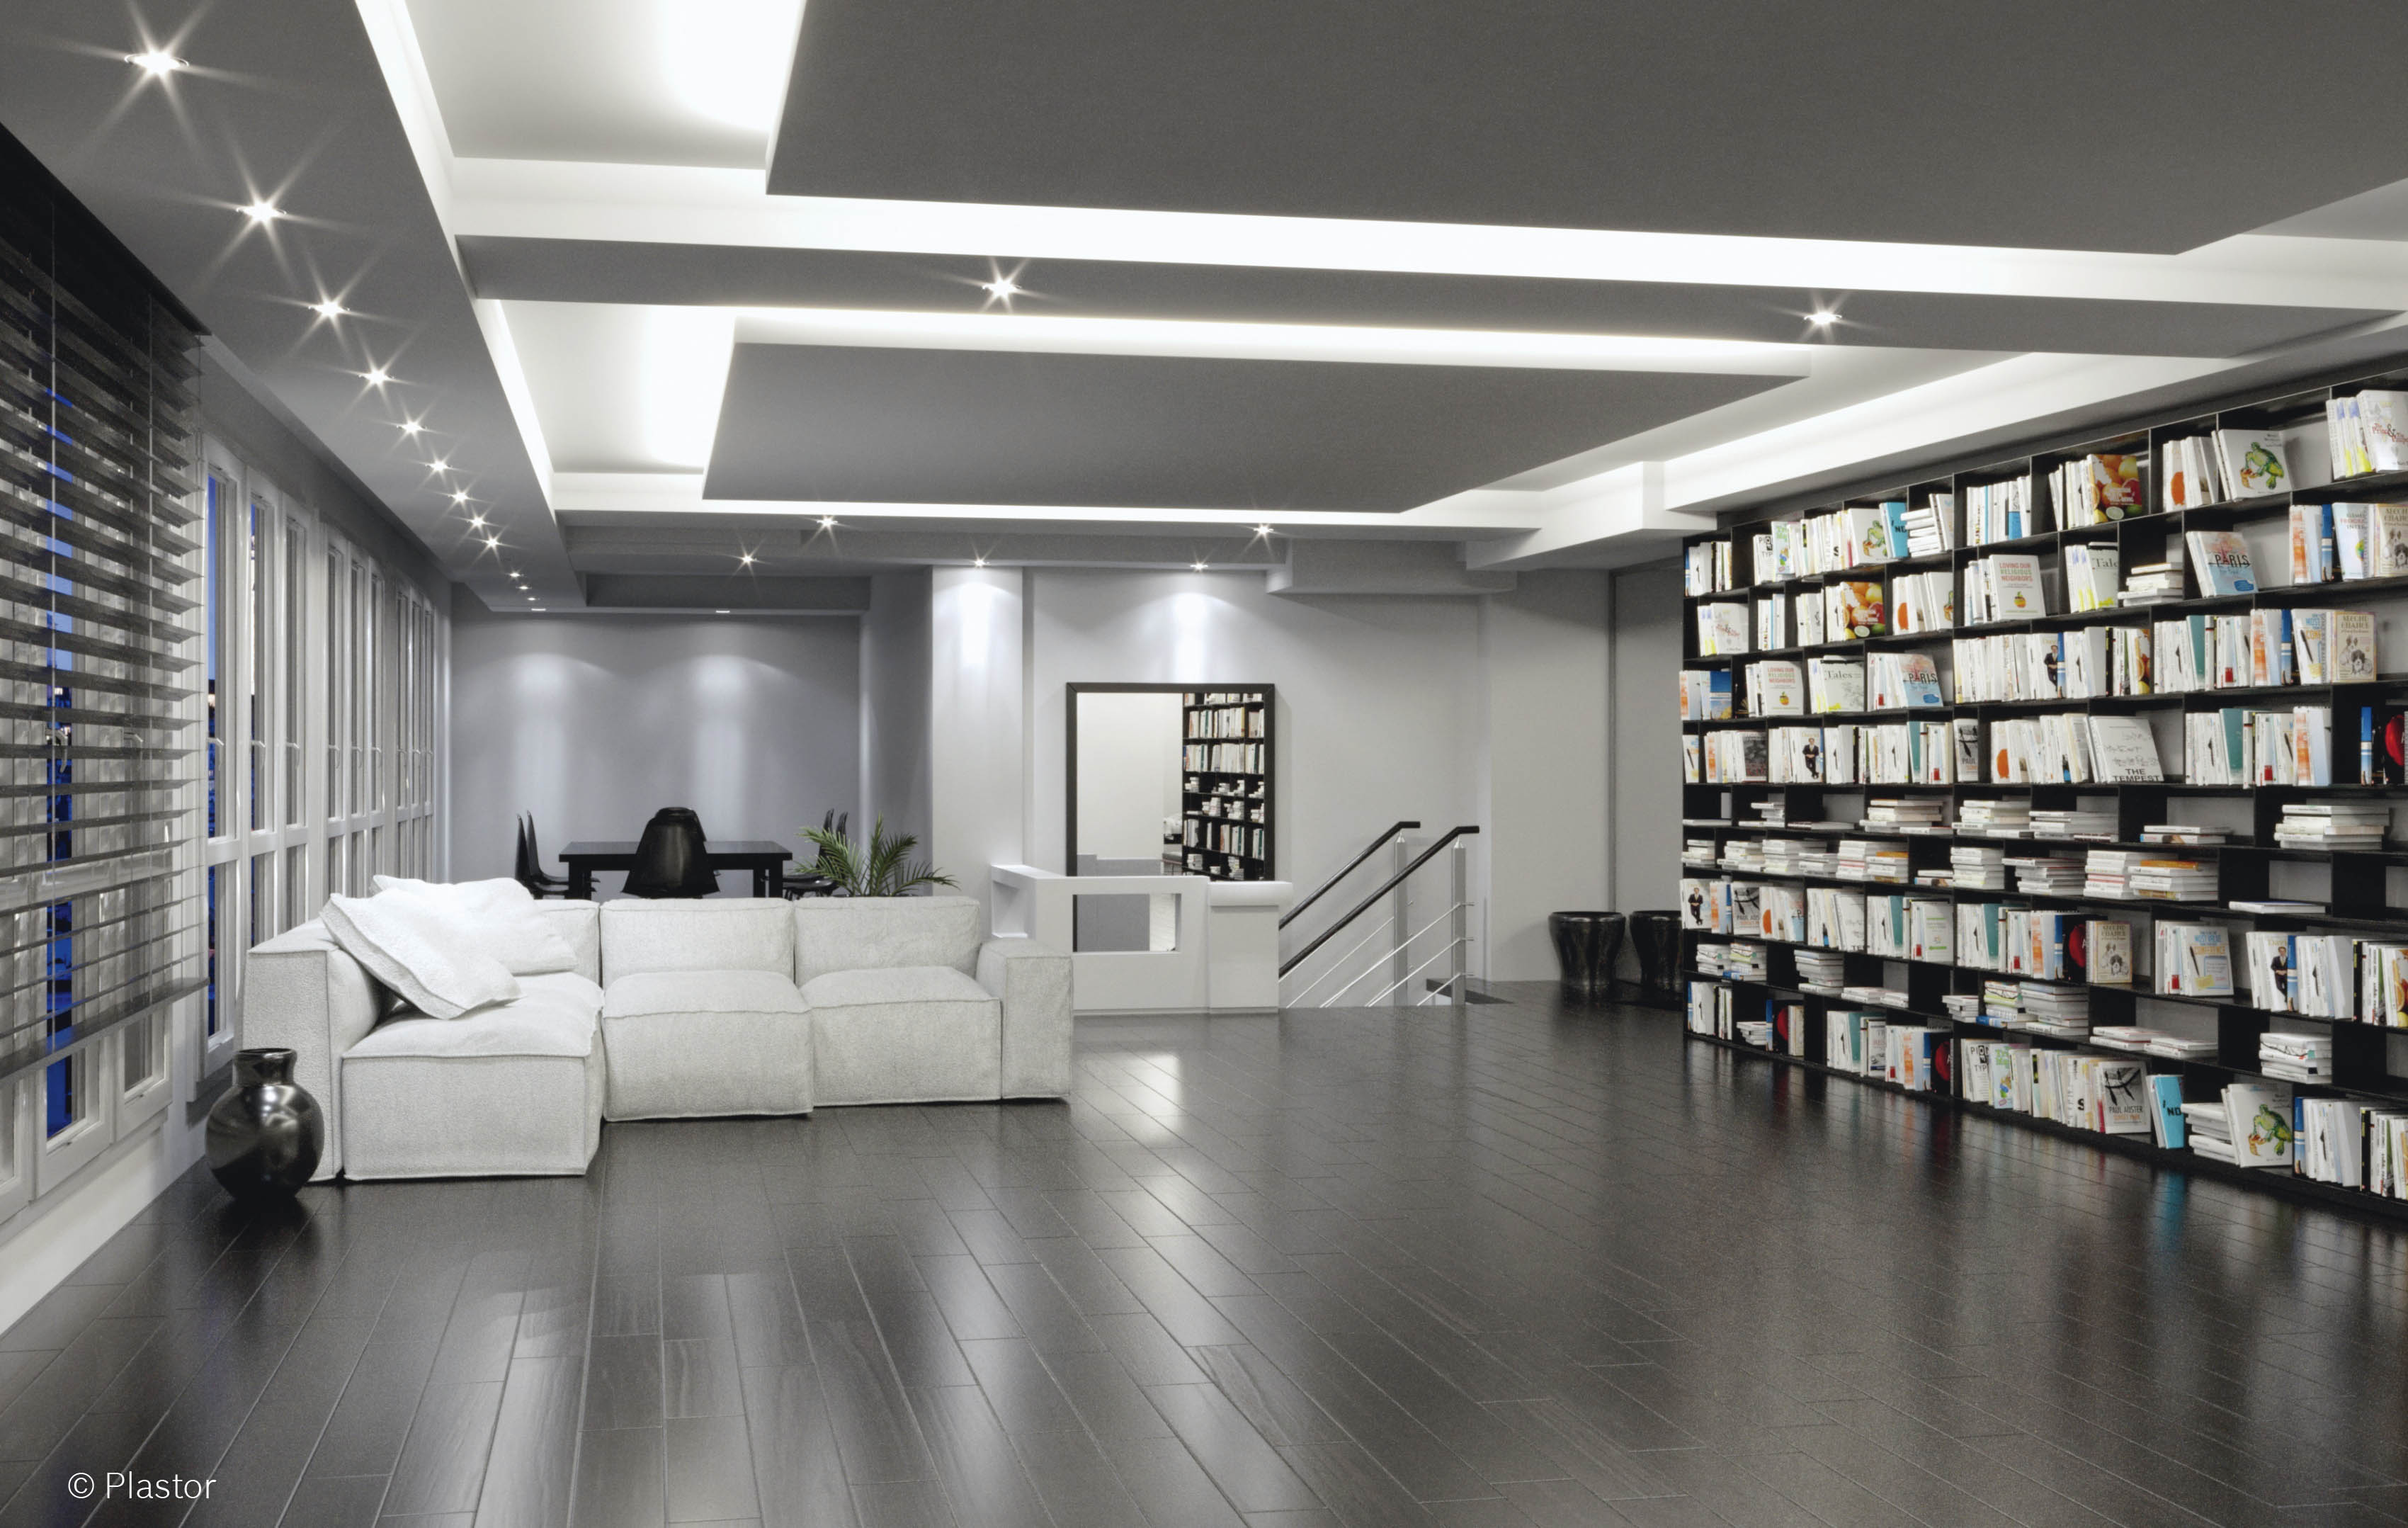 Plastor innovation nouvelle gamme colour floors for Salon avec parquet gris